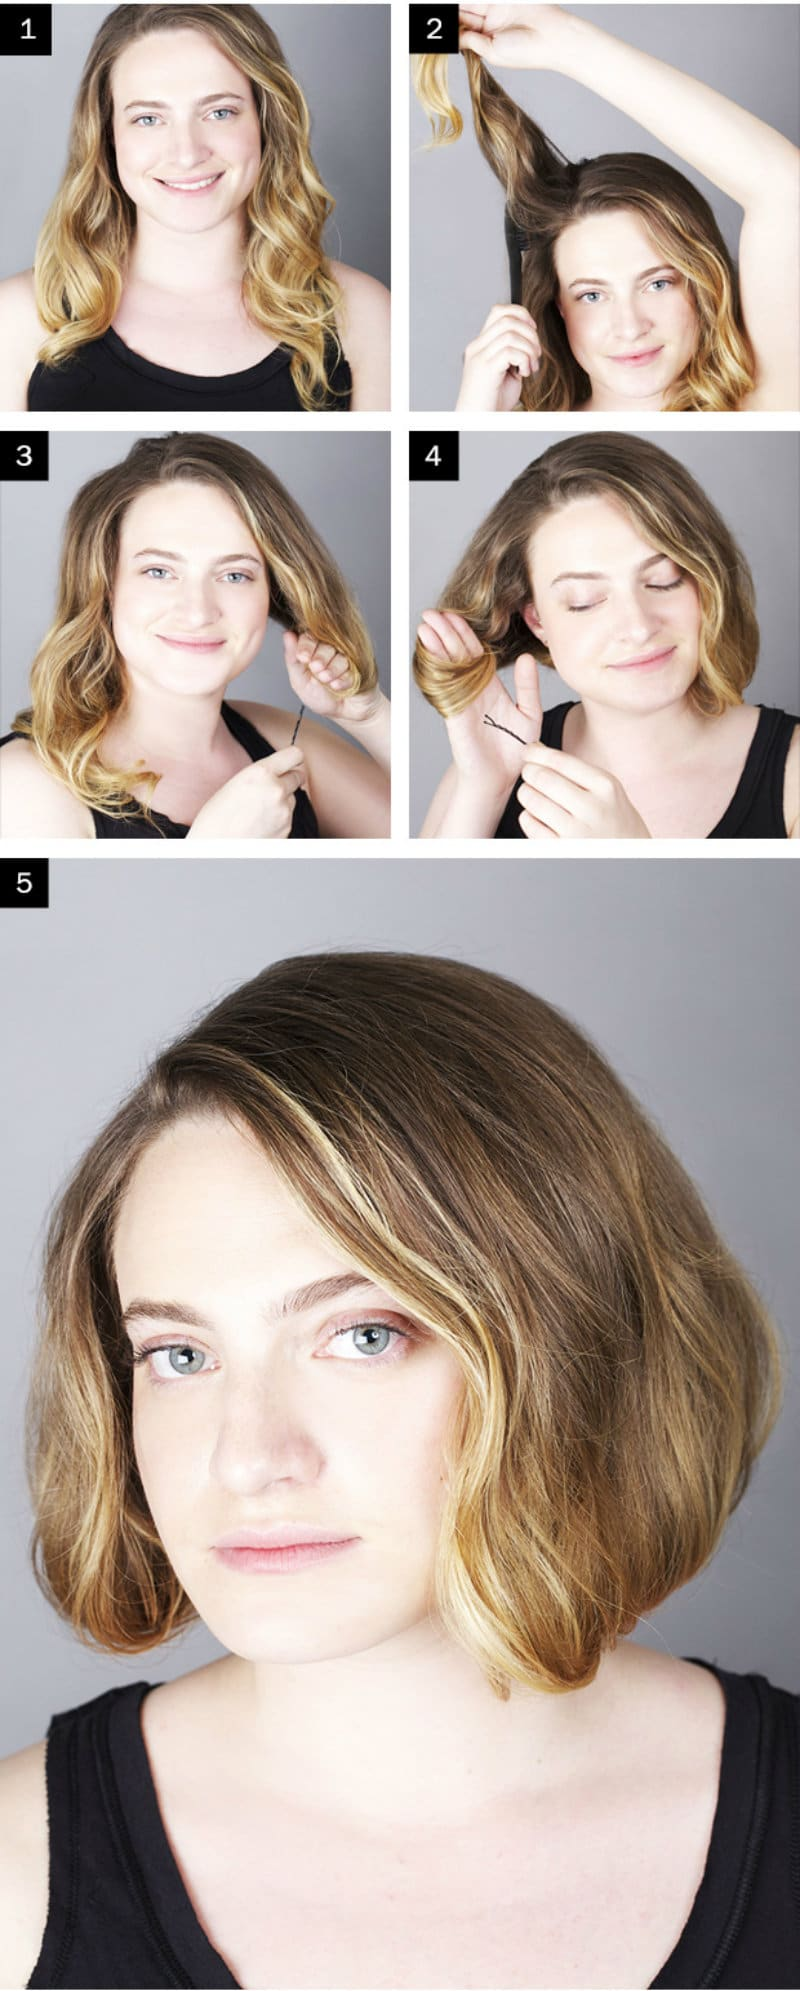 How To Make Your Hair Look Shorter Make Long Hair Look Short